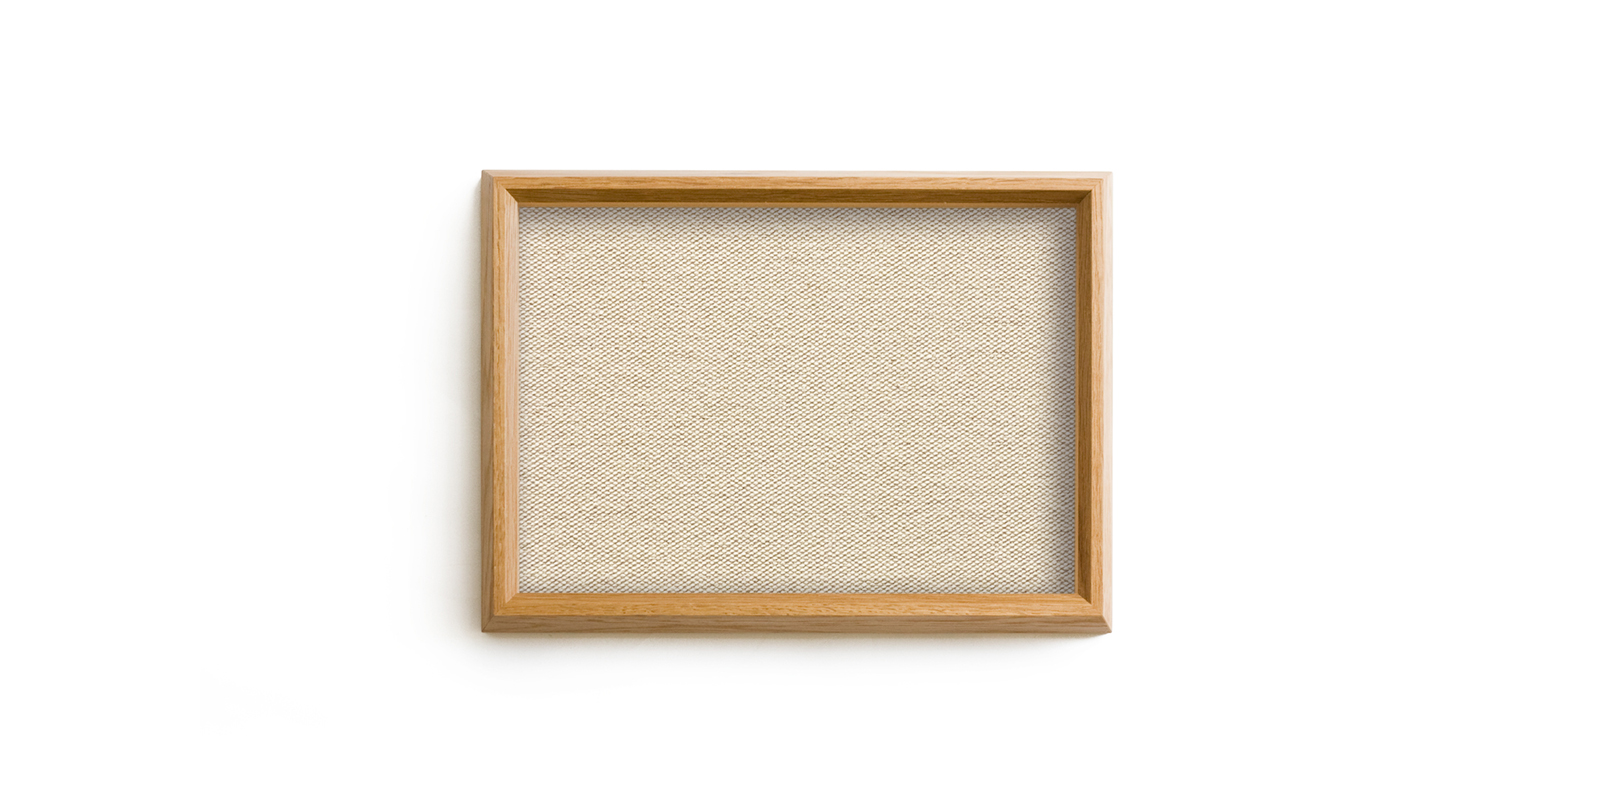 d art frame B5・FABRIC